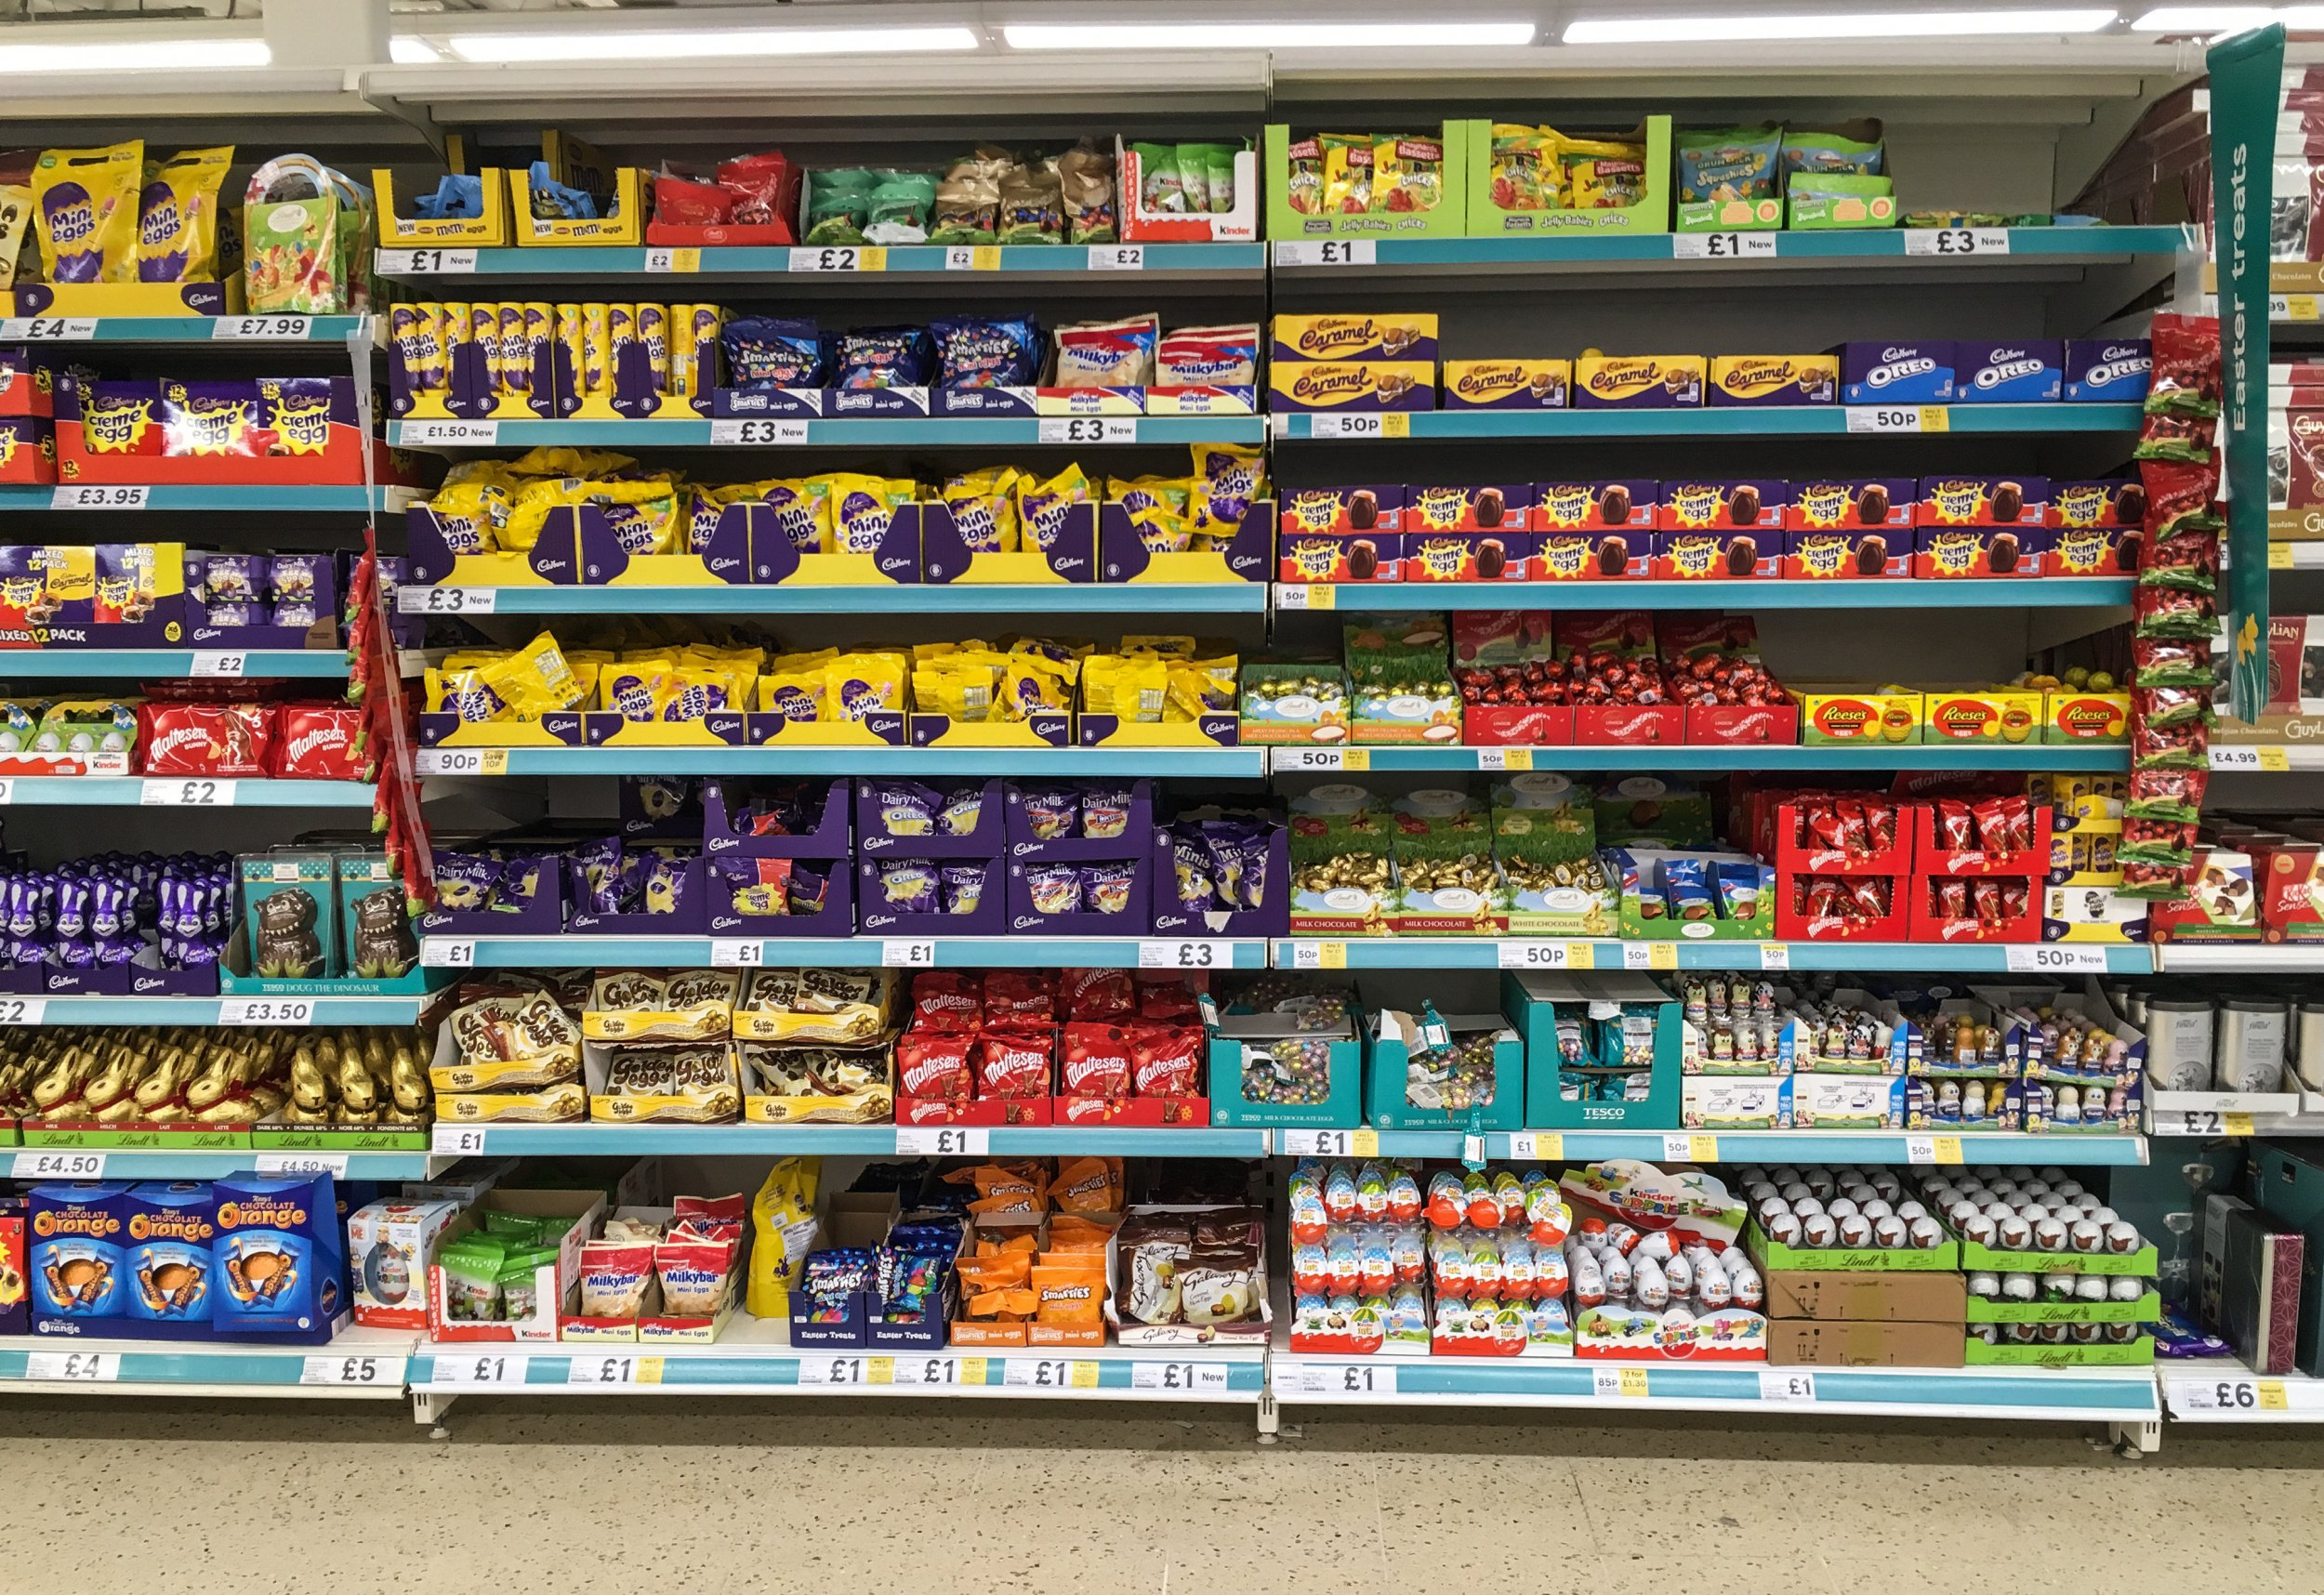 """Easter comes early to shops across the UK - These Easter eggs found a Tesco's in Leeds. Supermarkets are already stacking their shelves with Easter eggs - just days after Christmas decorations have come down. See story SWSYeaster. Easter may be more than three months away but shops have already got a spring in their step for making the most of seasonal sales. Tesco, Marks and Spencer and the Co-Op are among a handful of major retailers who have already started selling chocolate Easter Eggs. Baffled shoppers have taken to social media to post photographs of chocolate eggs, bunnies and gift sets, that are already on sale ahead of Easter Sunday on April 21. One shopper spotted chocolate treats on sale at a Marks and Spencer store in Devon on New Year's Eve, less than a week after Christmas. Eggs have also been spotted in a Tesco store in Beeston, Nottingham, and Gateshead, a Co-op store in Dartford and several Sainsbury's stores. Easter is more than 100 days away and chocolate eggs will likely be on sale for around a third of the whole of 2019. On Twitter, Jo Carter (@jocarter2) wrote: """"Your eyes do not deceive you... these are Easter eggs on the shelf."""" John Connor (@John_Connor01), tweeted the Co-op to ask """"Just how big the demand for Easter eggs is in January?"""", after spotting eggs on sale on Sunday (January 6)."""